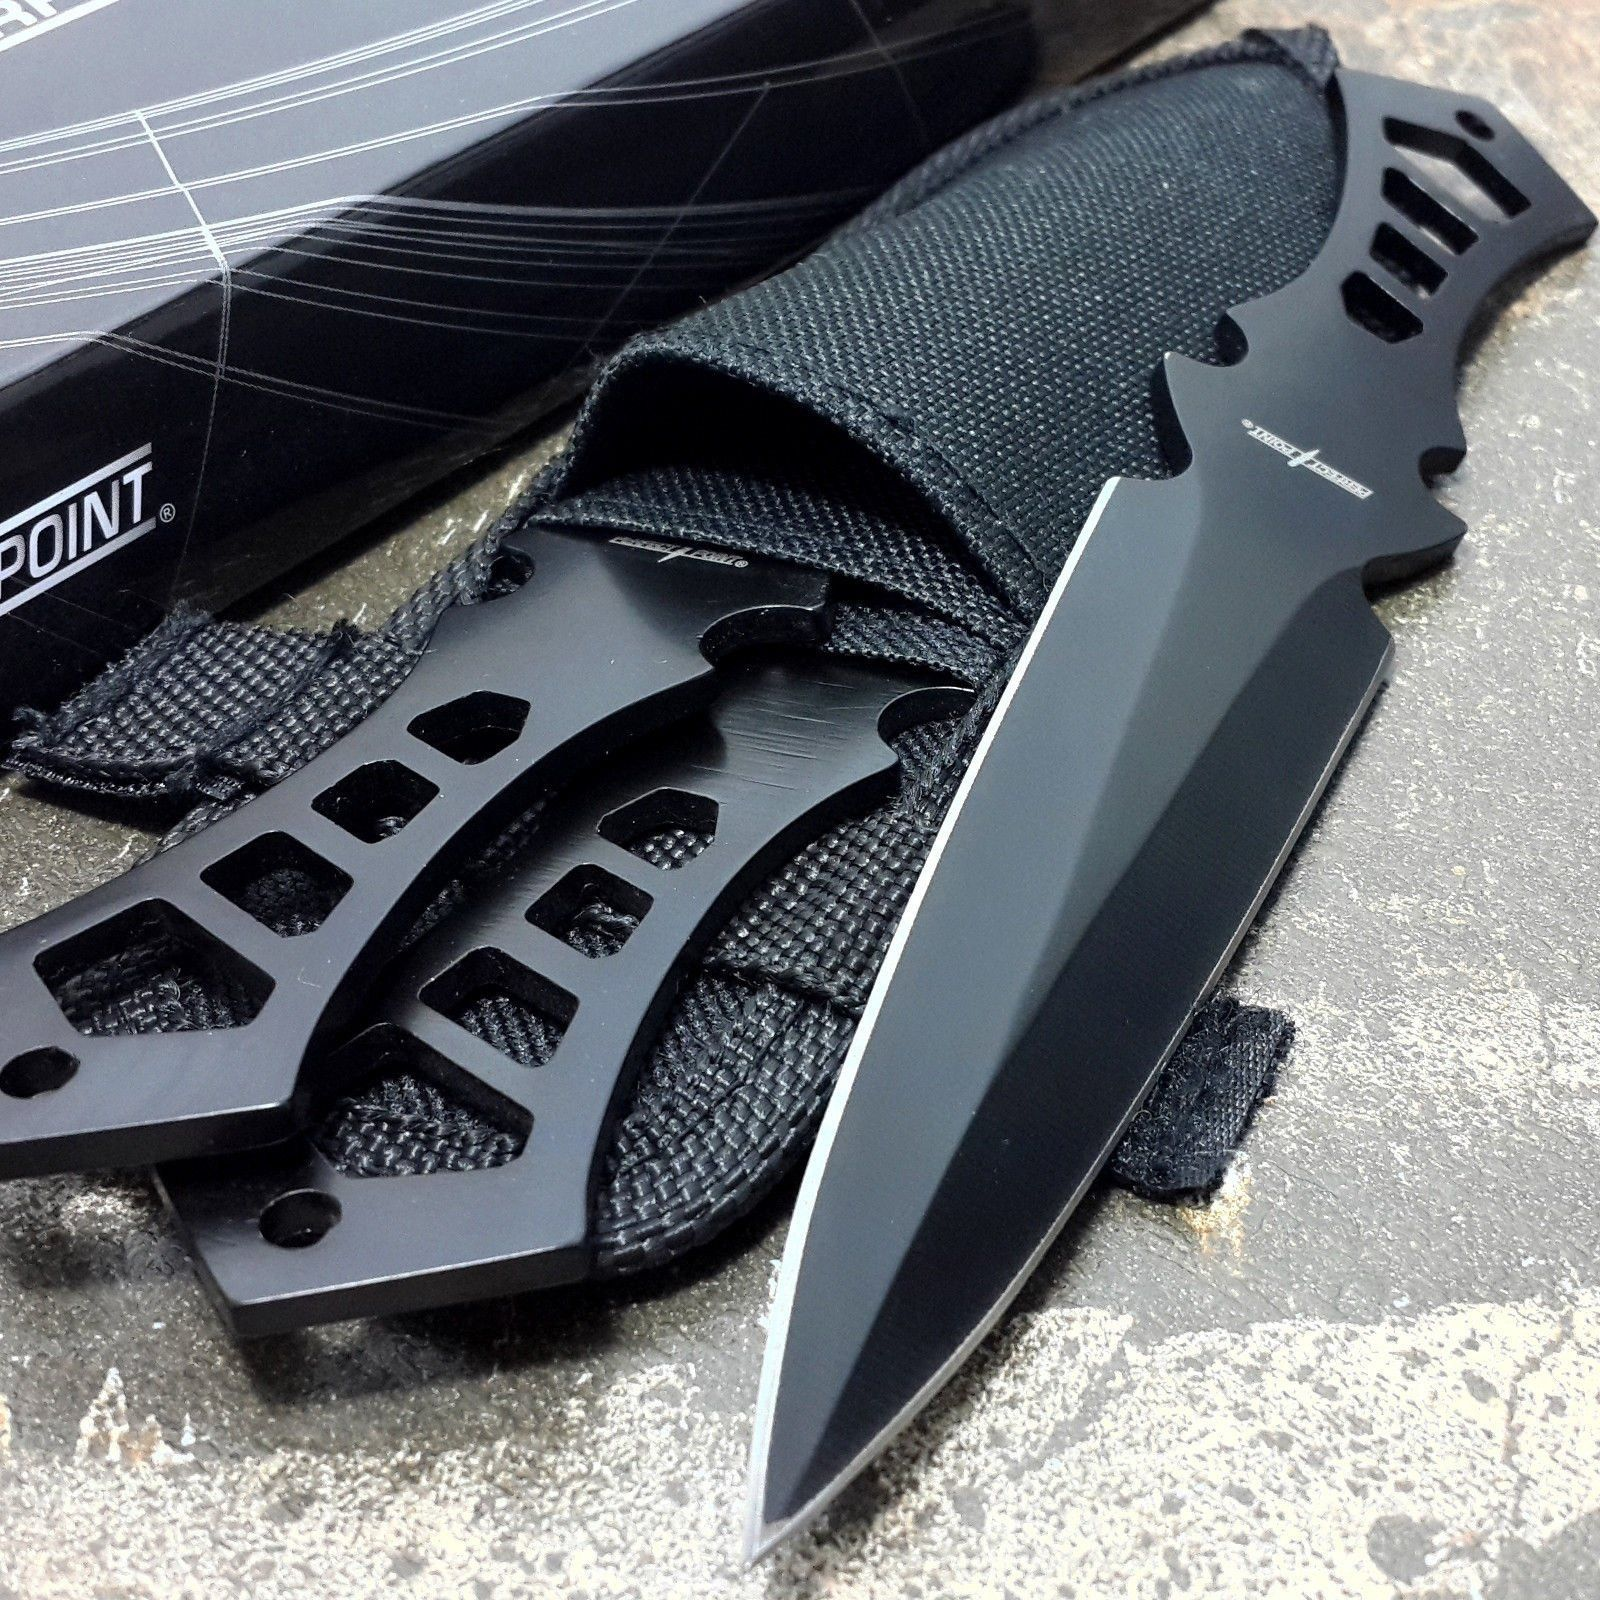 PERFECT POINT 3 Pieces THROWING KNIFE Black Ninja Throwers Set Knives Nylon Case. It has a black finished stainless steel blade with cut grip handle. Cut out design handleใ Lanyard hole. Blade Material : Stainless steel. Handle Material : Full tang. Overall Length : 7.50.ม Blade Lenght : 3.75.